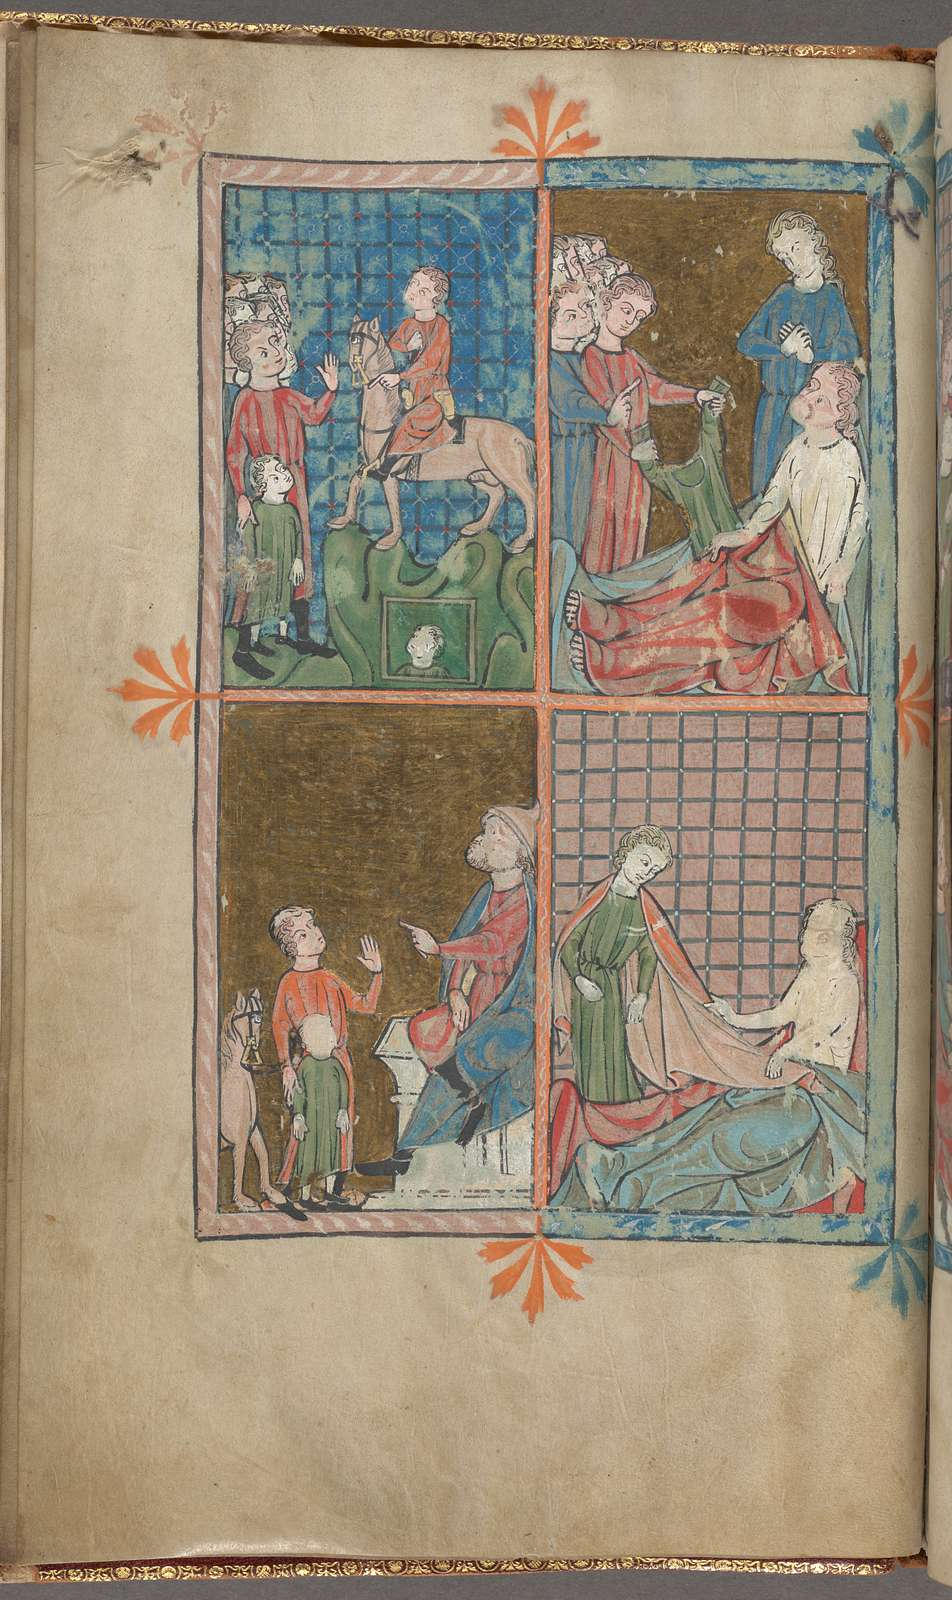 Full-page miniature with four scenes: Joseph sold into slavery; Jacob seeing Joseph's coat; Joseph in Egypt; Potiphar's wife, fol. 4v